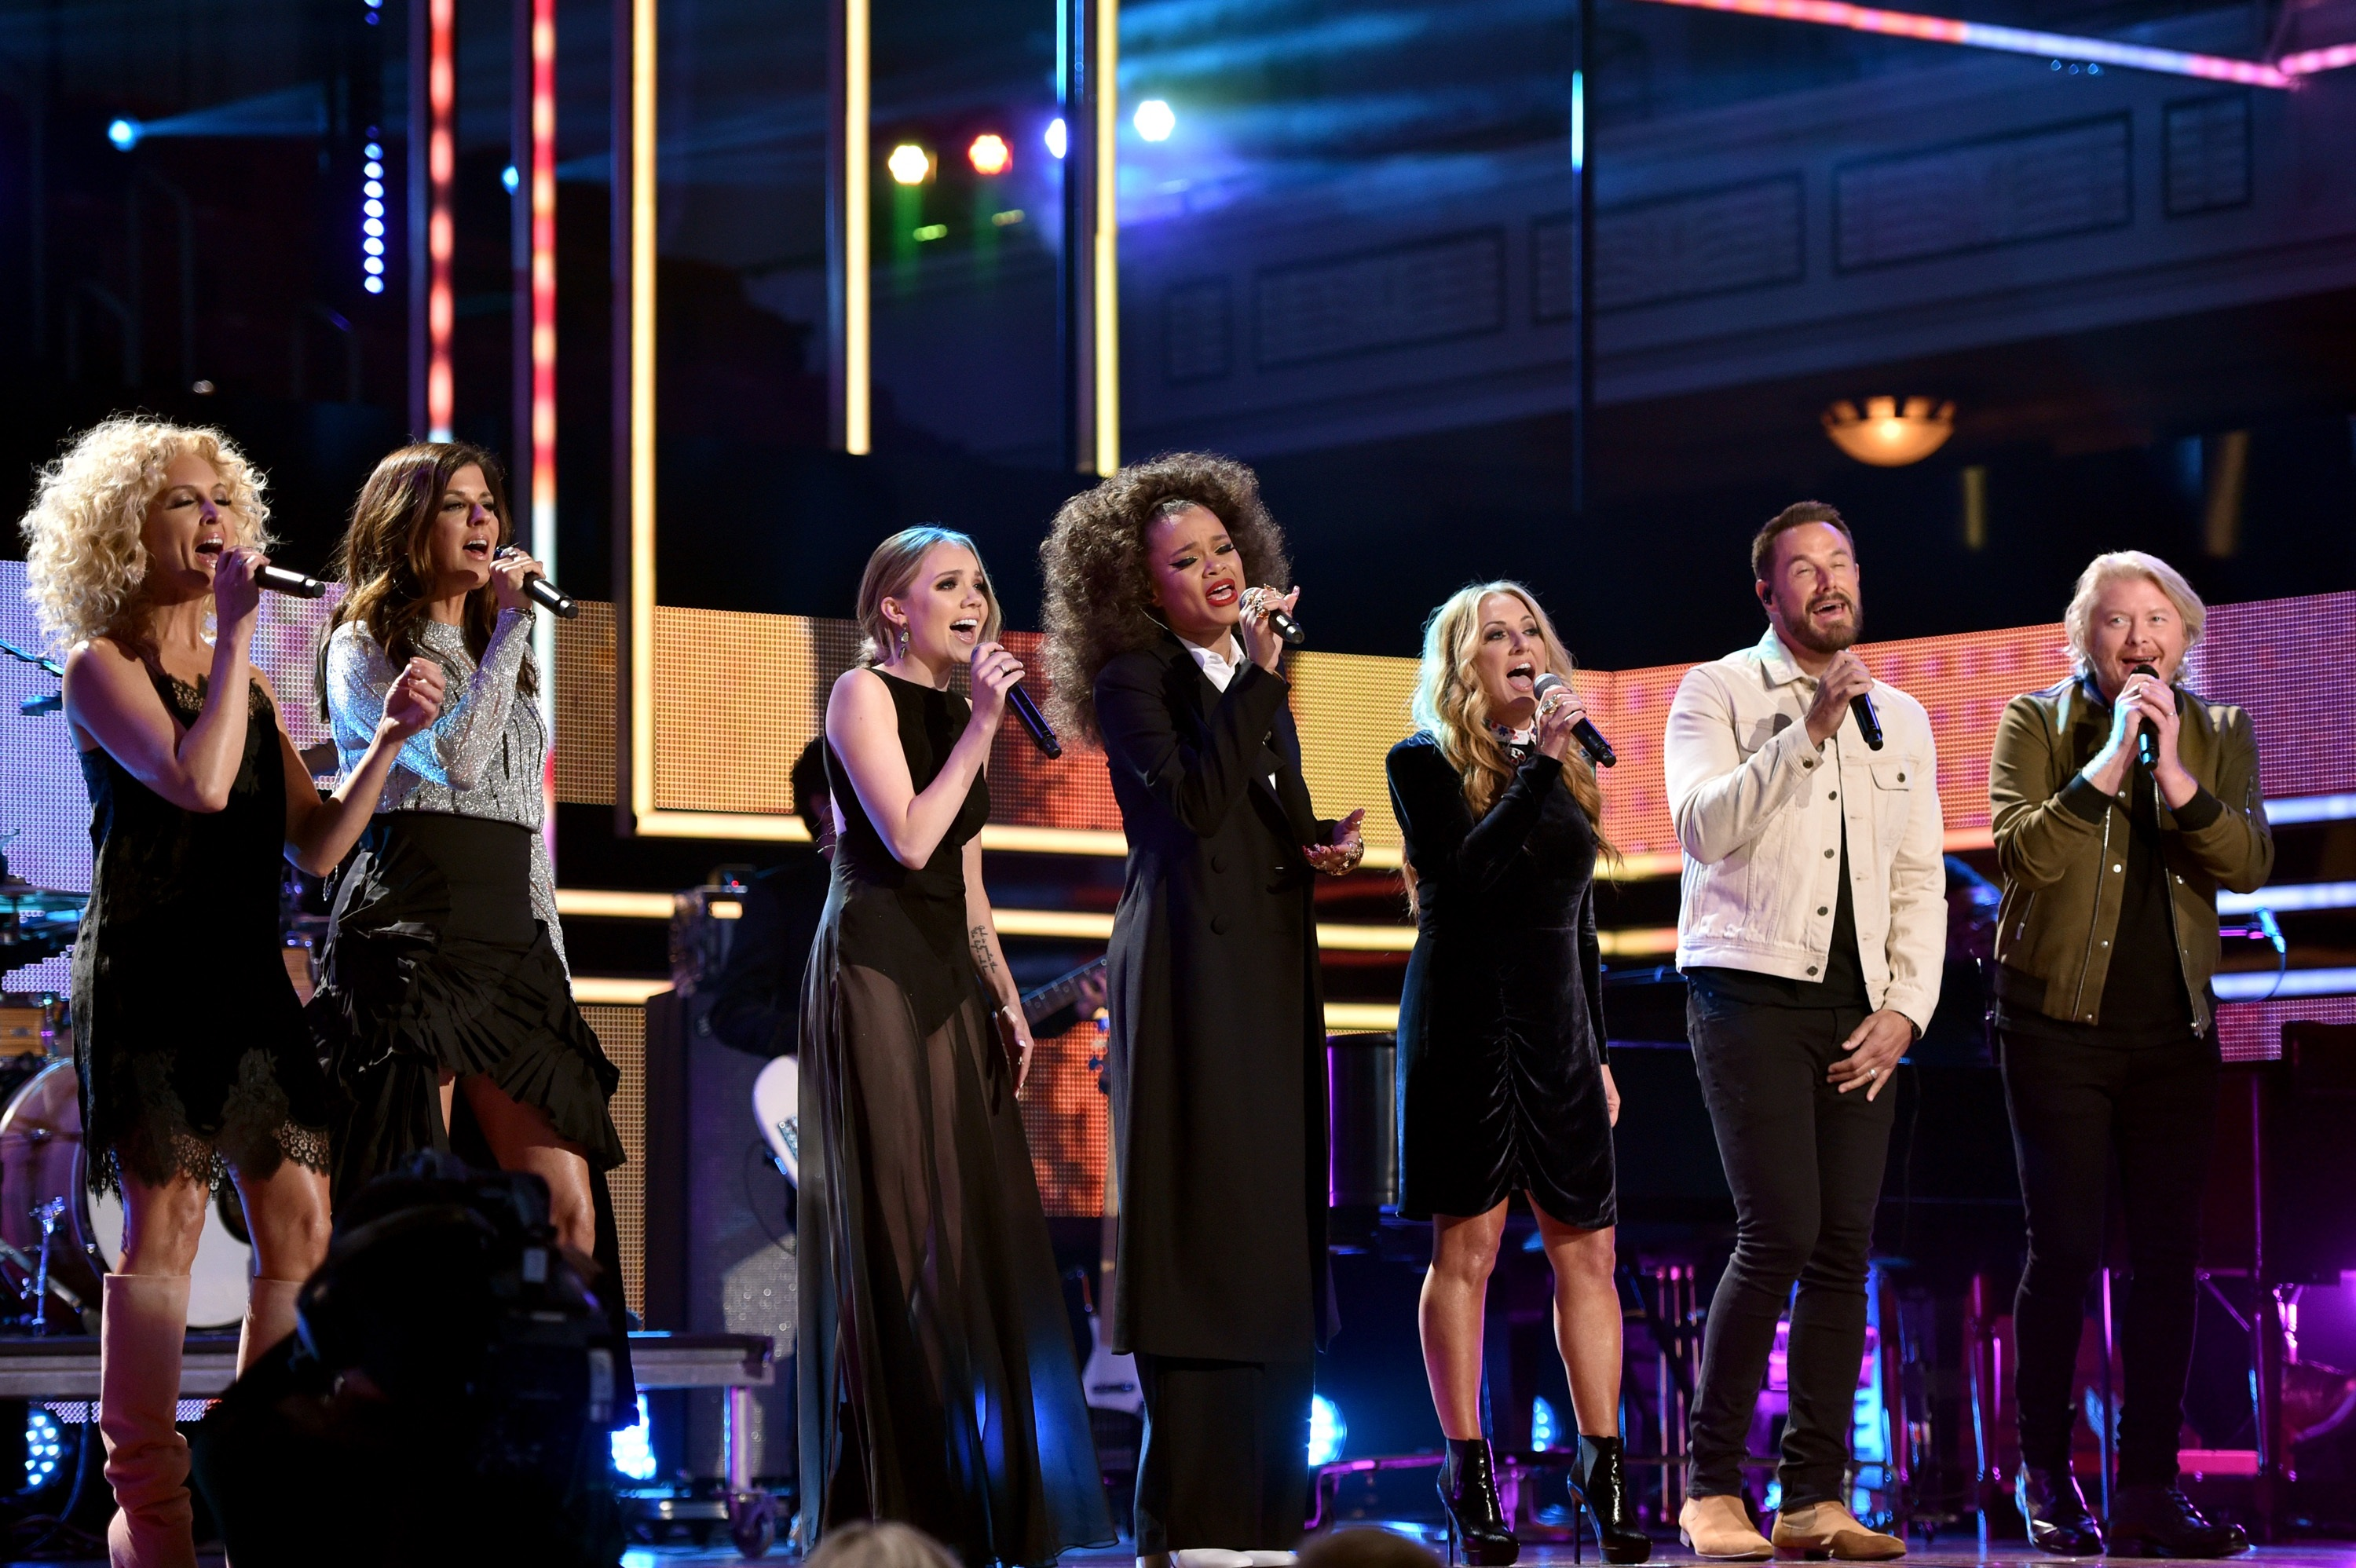 (L-R) Kimberly Schlapman and Karen Fairchild of Little Big Town, Danielle Bradbery, Andra Day, Lee Ann Womack, Jimi Westbrook and Philip Sweet of Little Big Town; Photo by John Shearer/Getty Images for CMT